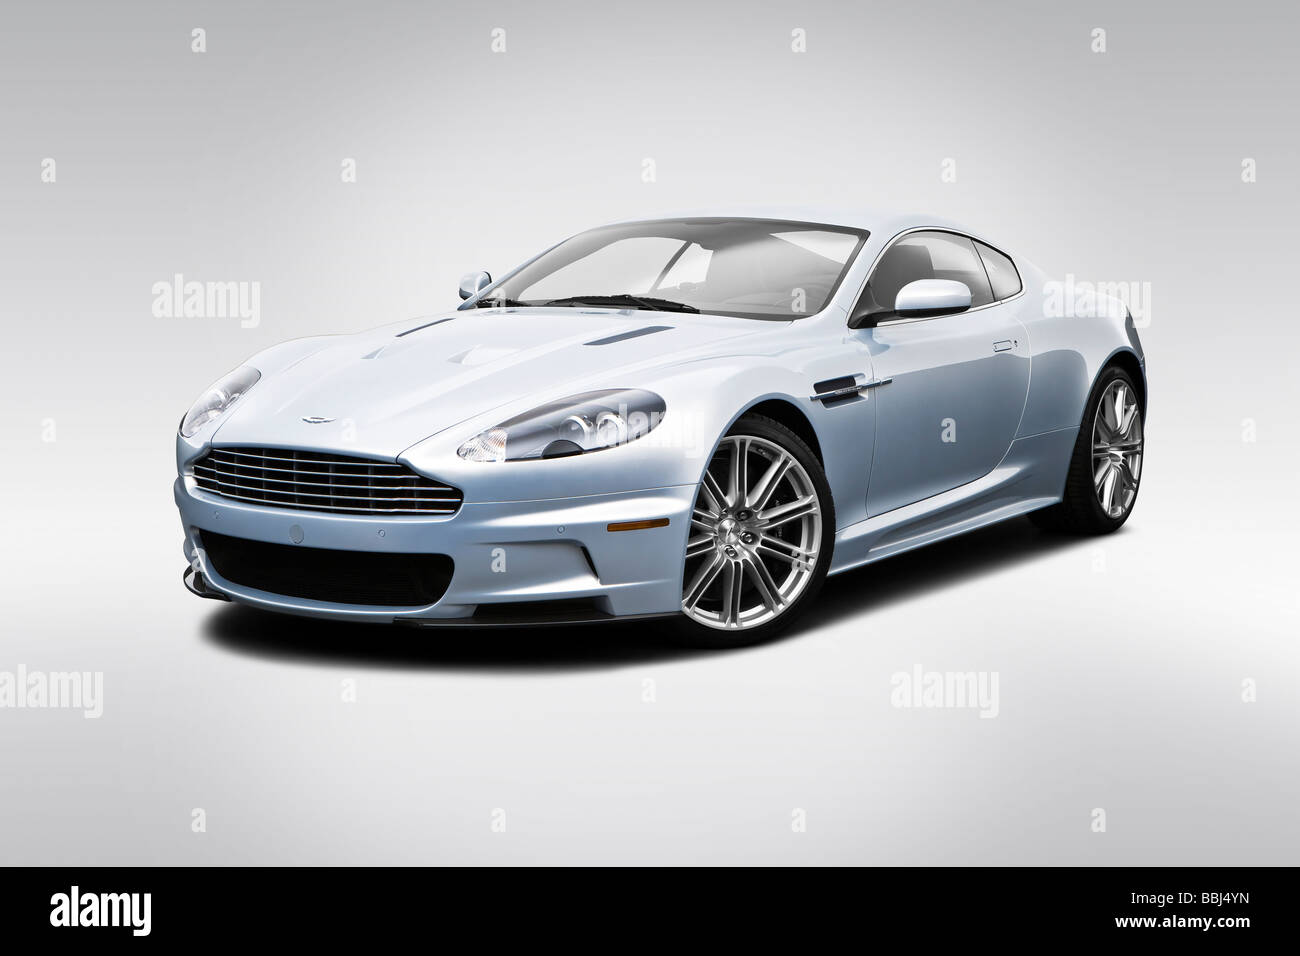 2009 Aston Martin DBS in Silver - Front angle view - Stock Image